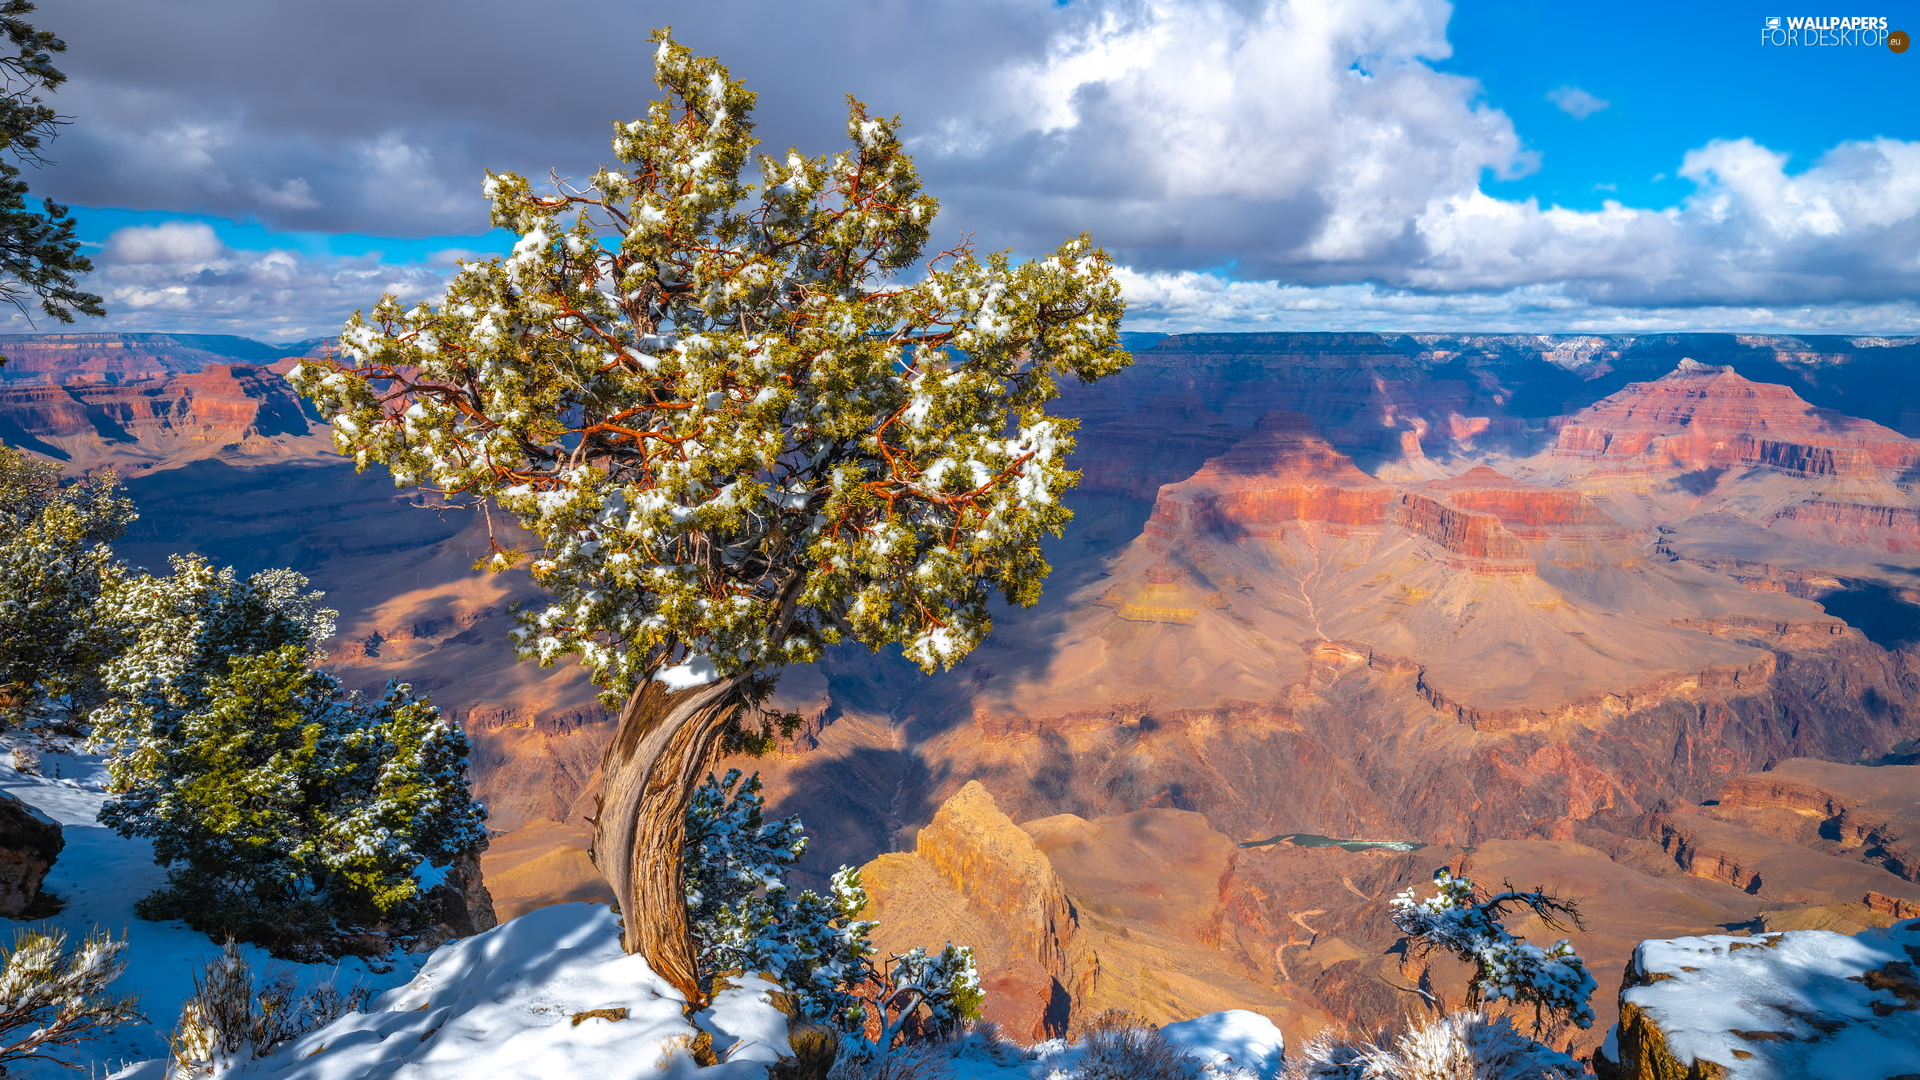 Grand Canyon, Grand Canyon National Park, Grand Canyon, Mountains, State of Arizona, The United States, trees, pine, Rocks